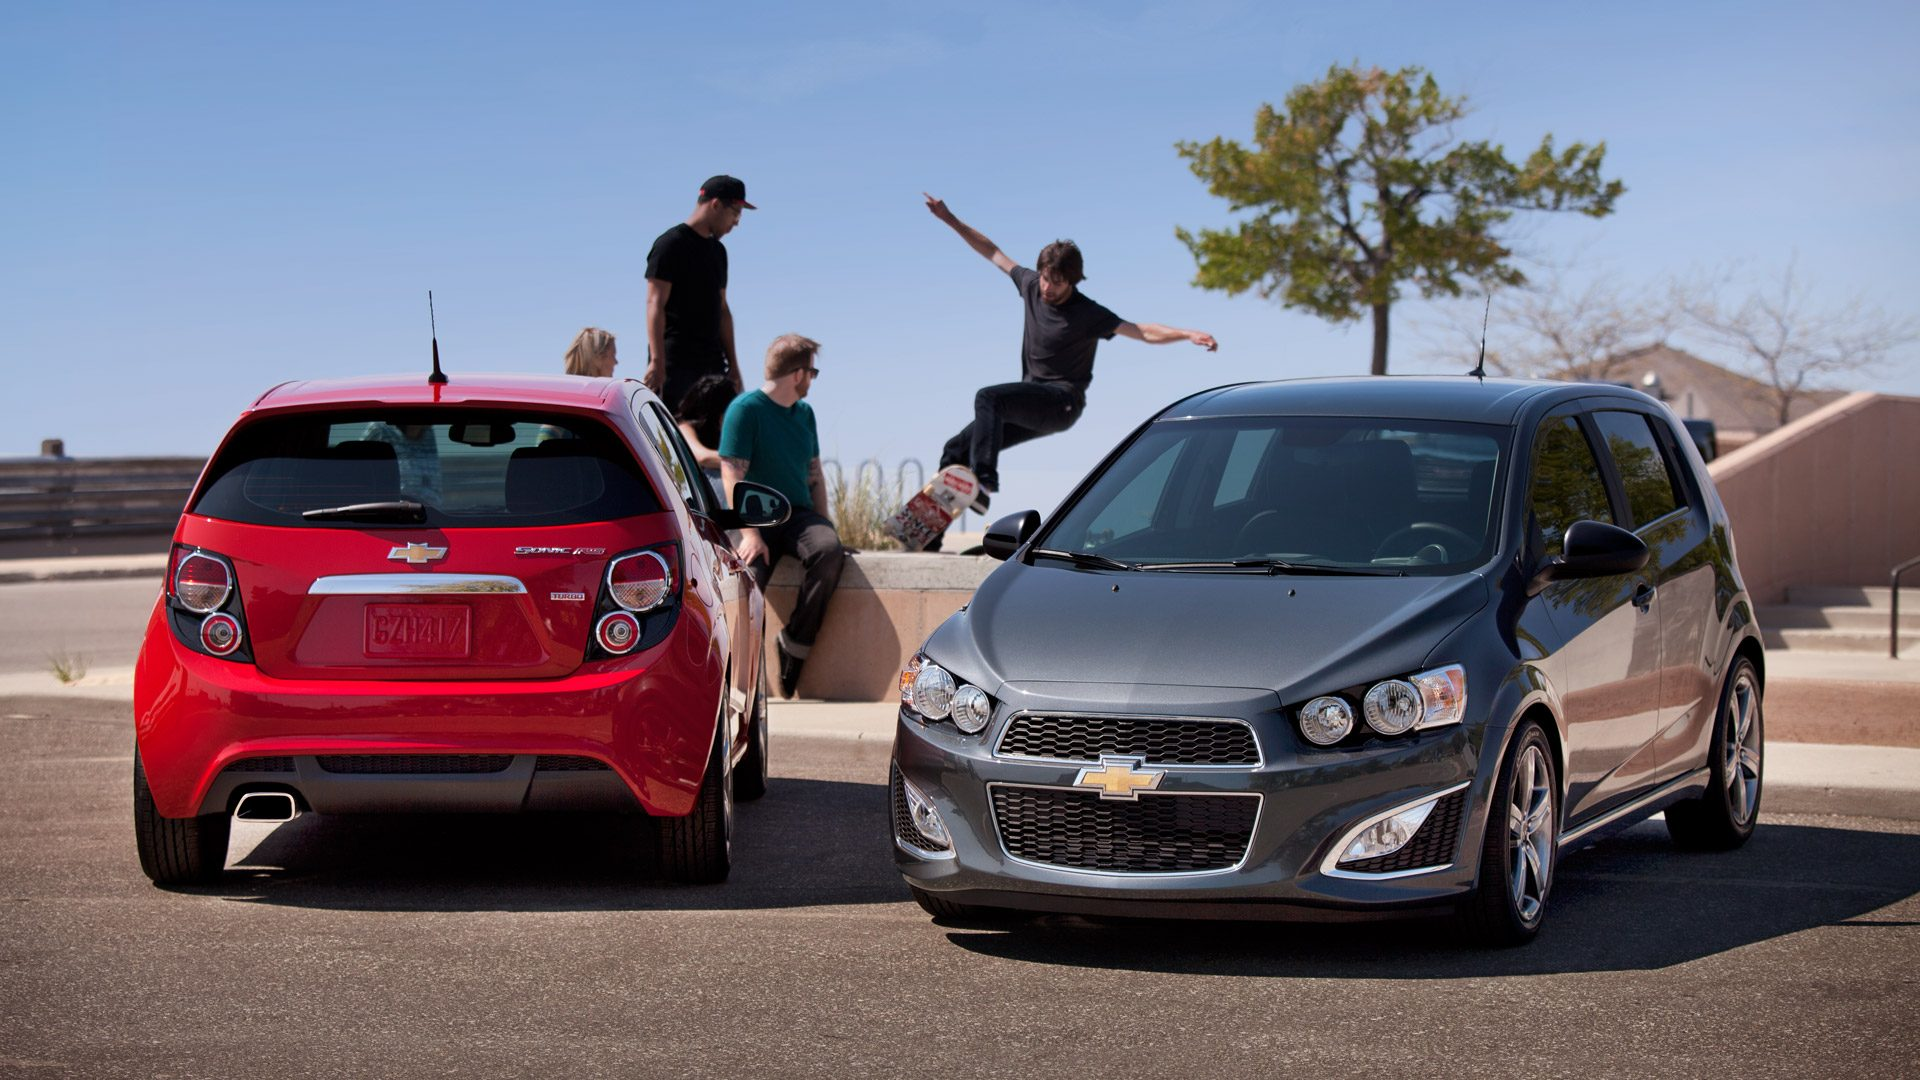 Top 5 reasons That the Chevrolet Sonic is the perfect summer hatchback